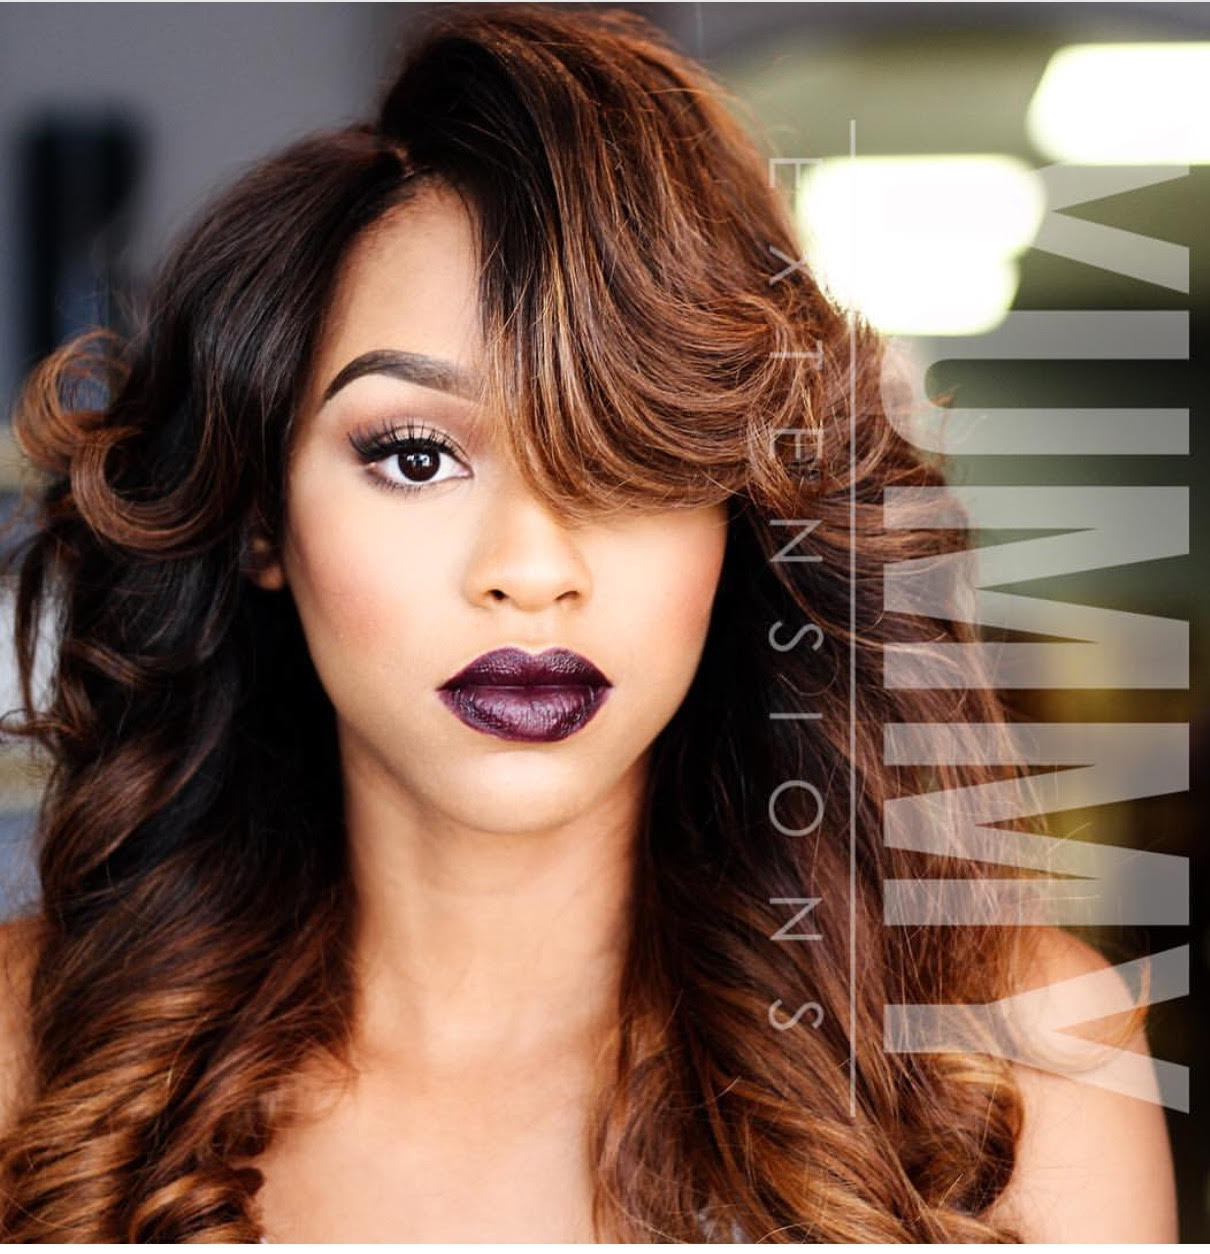 Beauty Fashion Outlet Crowley La: Yummy Extensions Hosts Two-Day Pop-Up Shop & Beauty Lounge